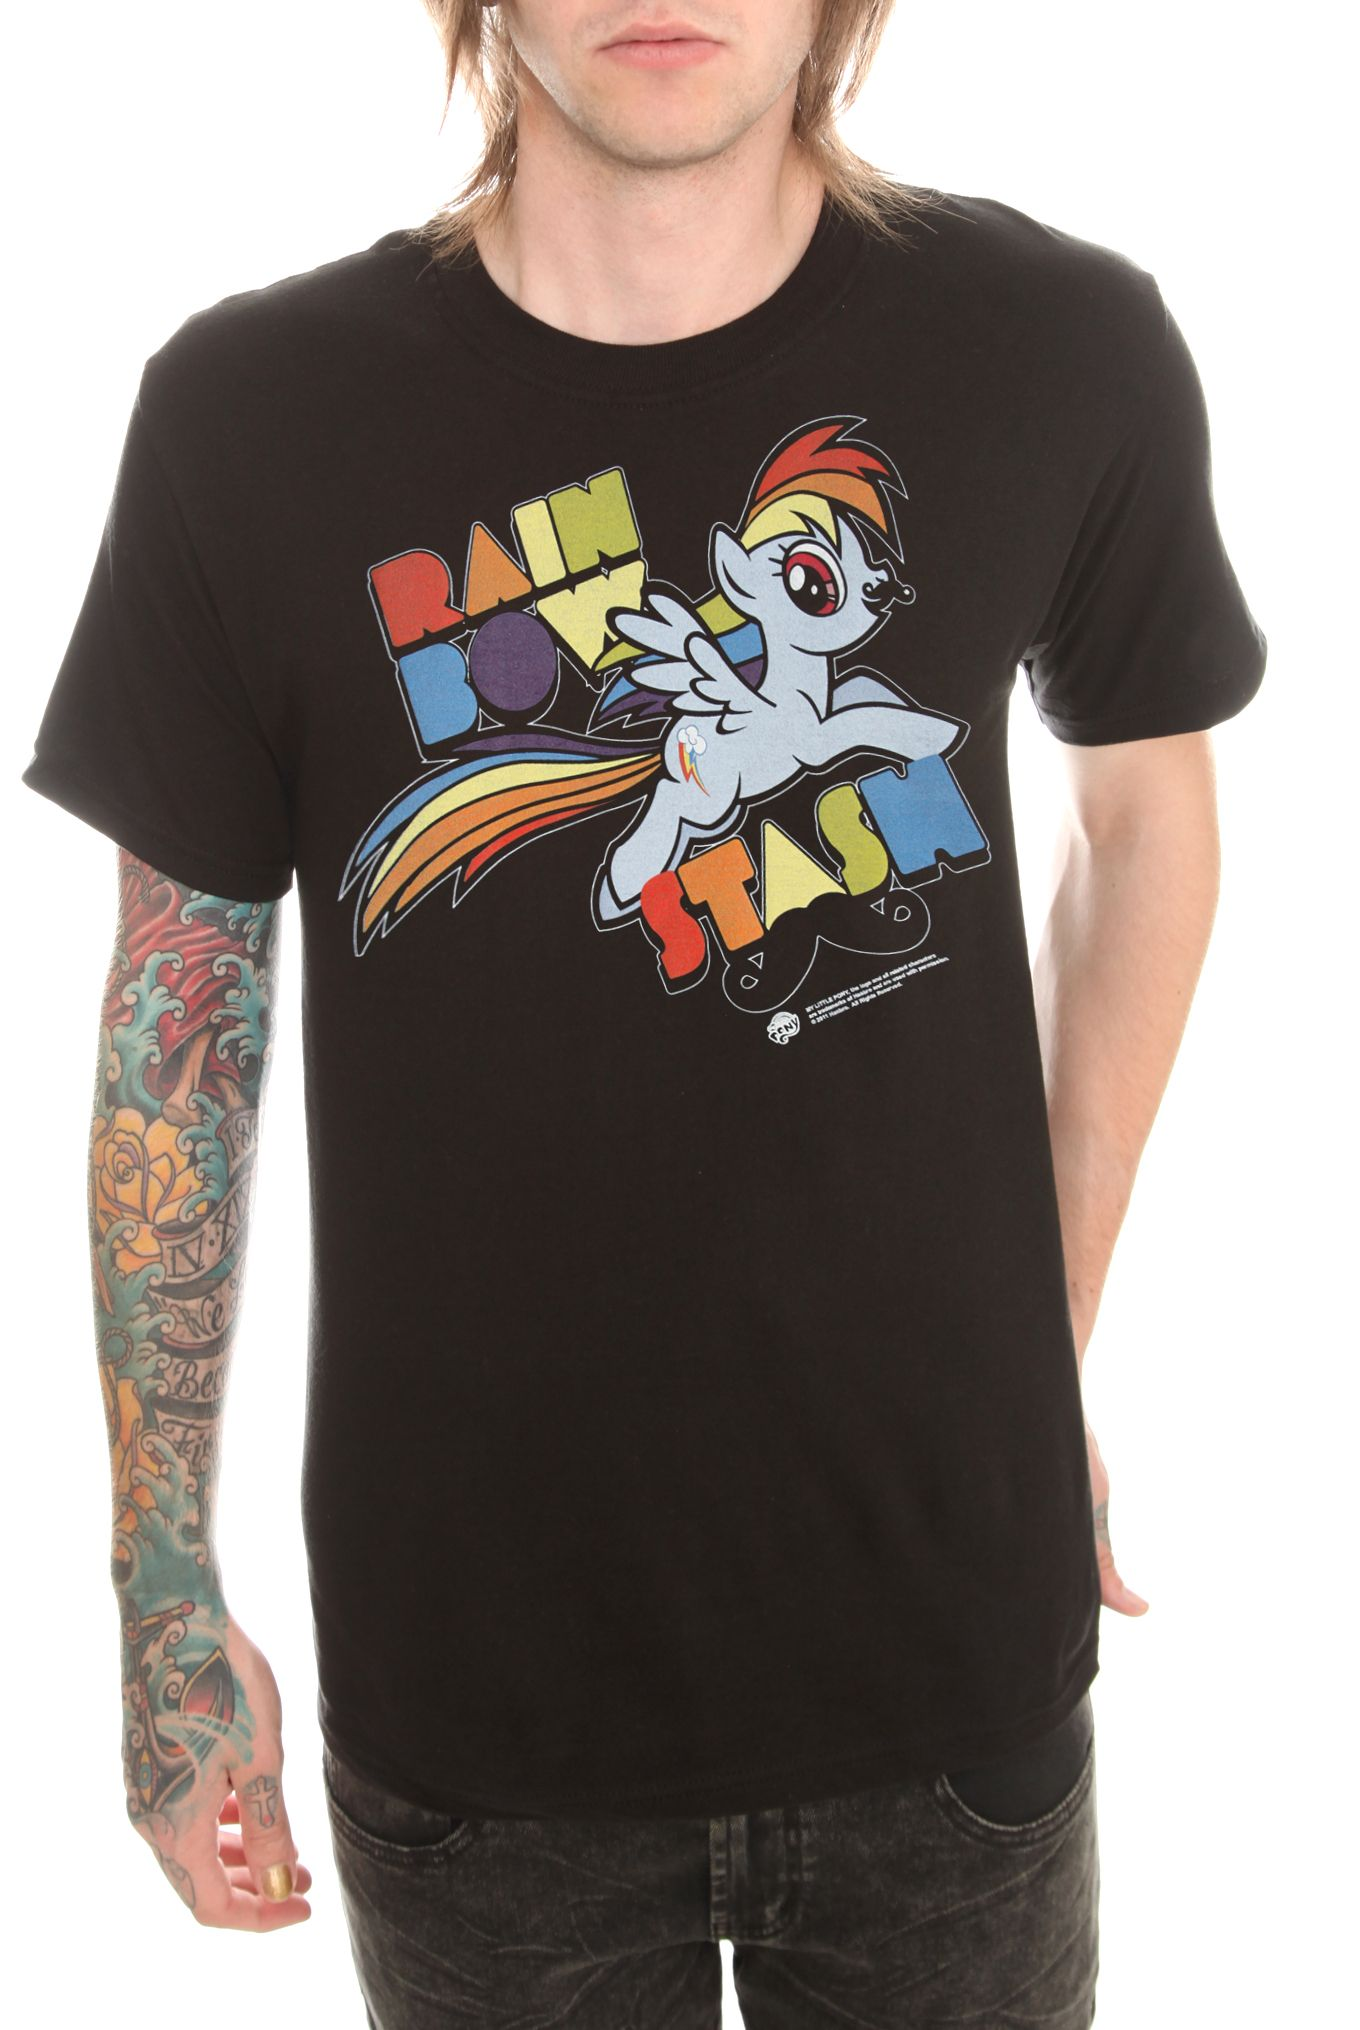 Little Pony Rainbow Stash T-shirt Hot Topic Lizzie